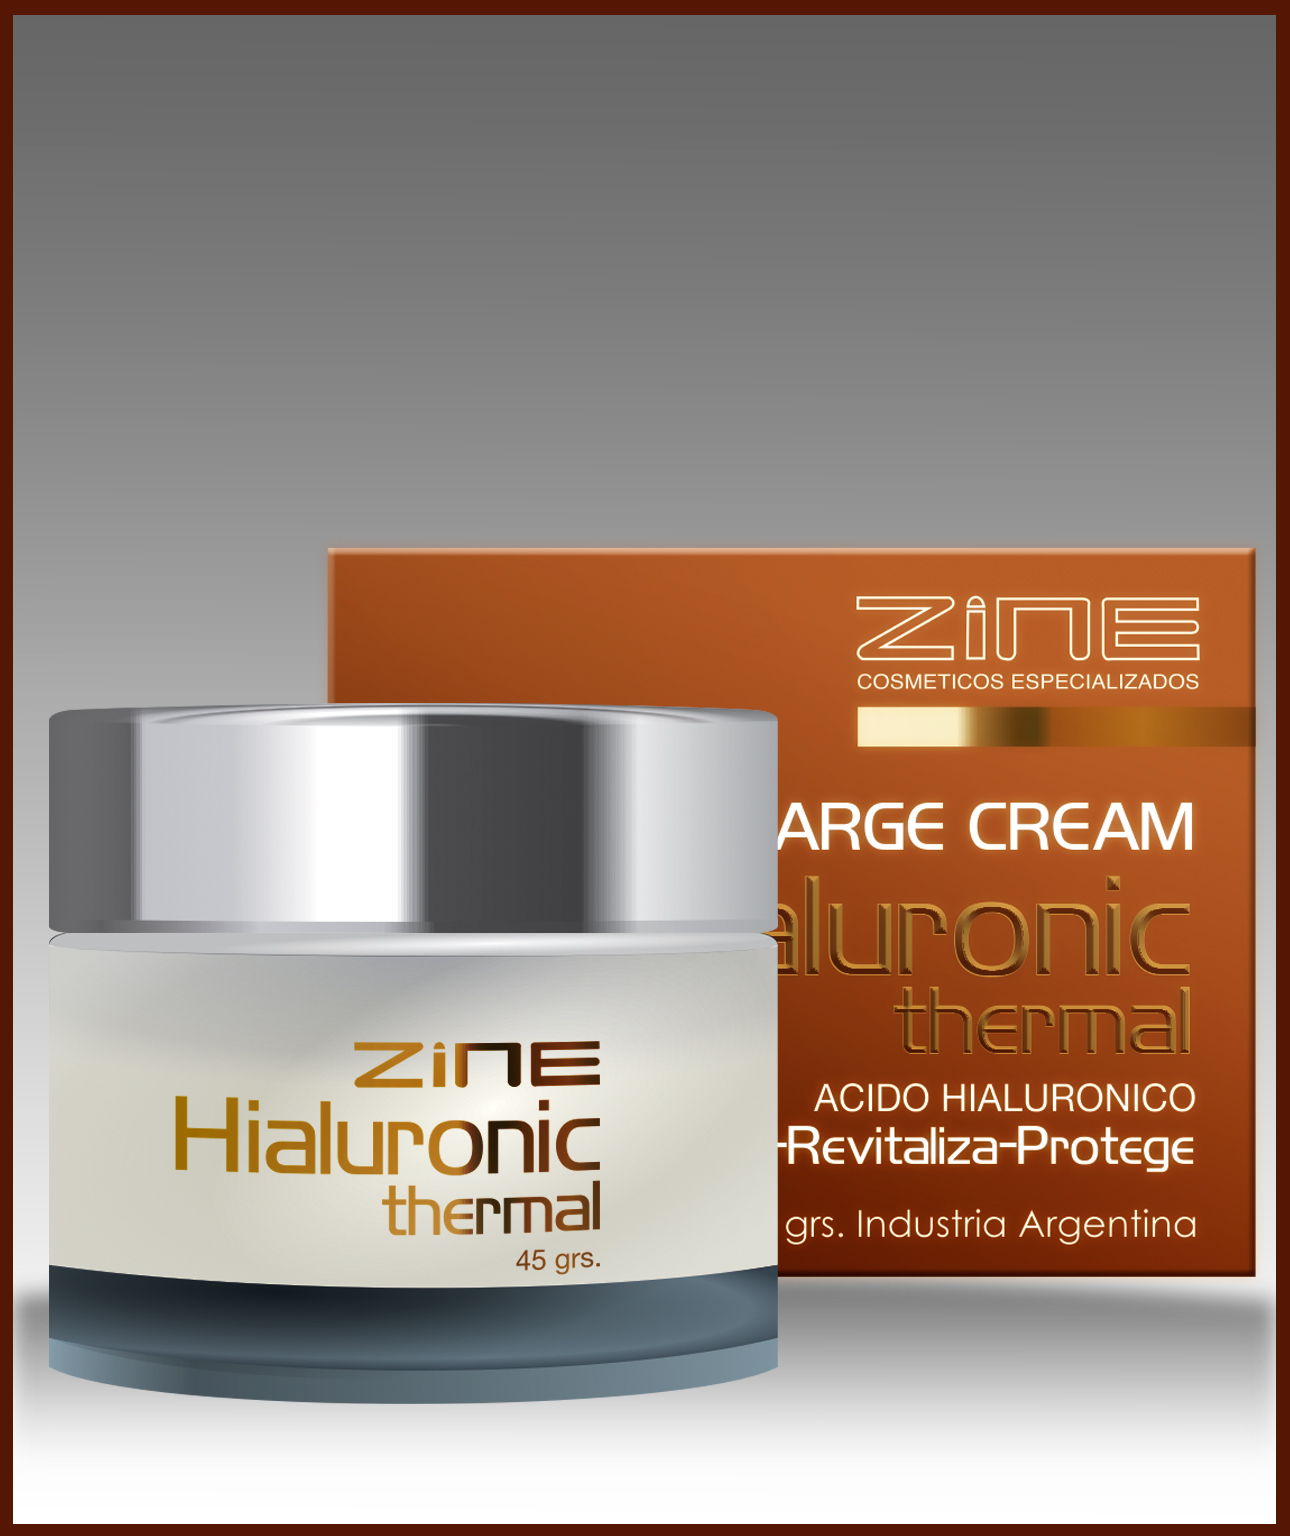 Hialuronic Thermal